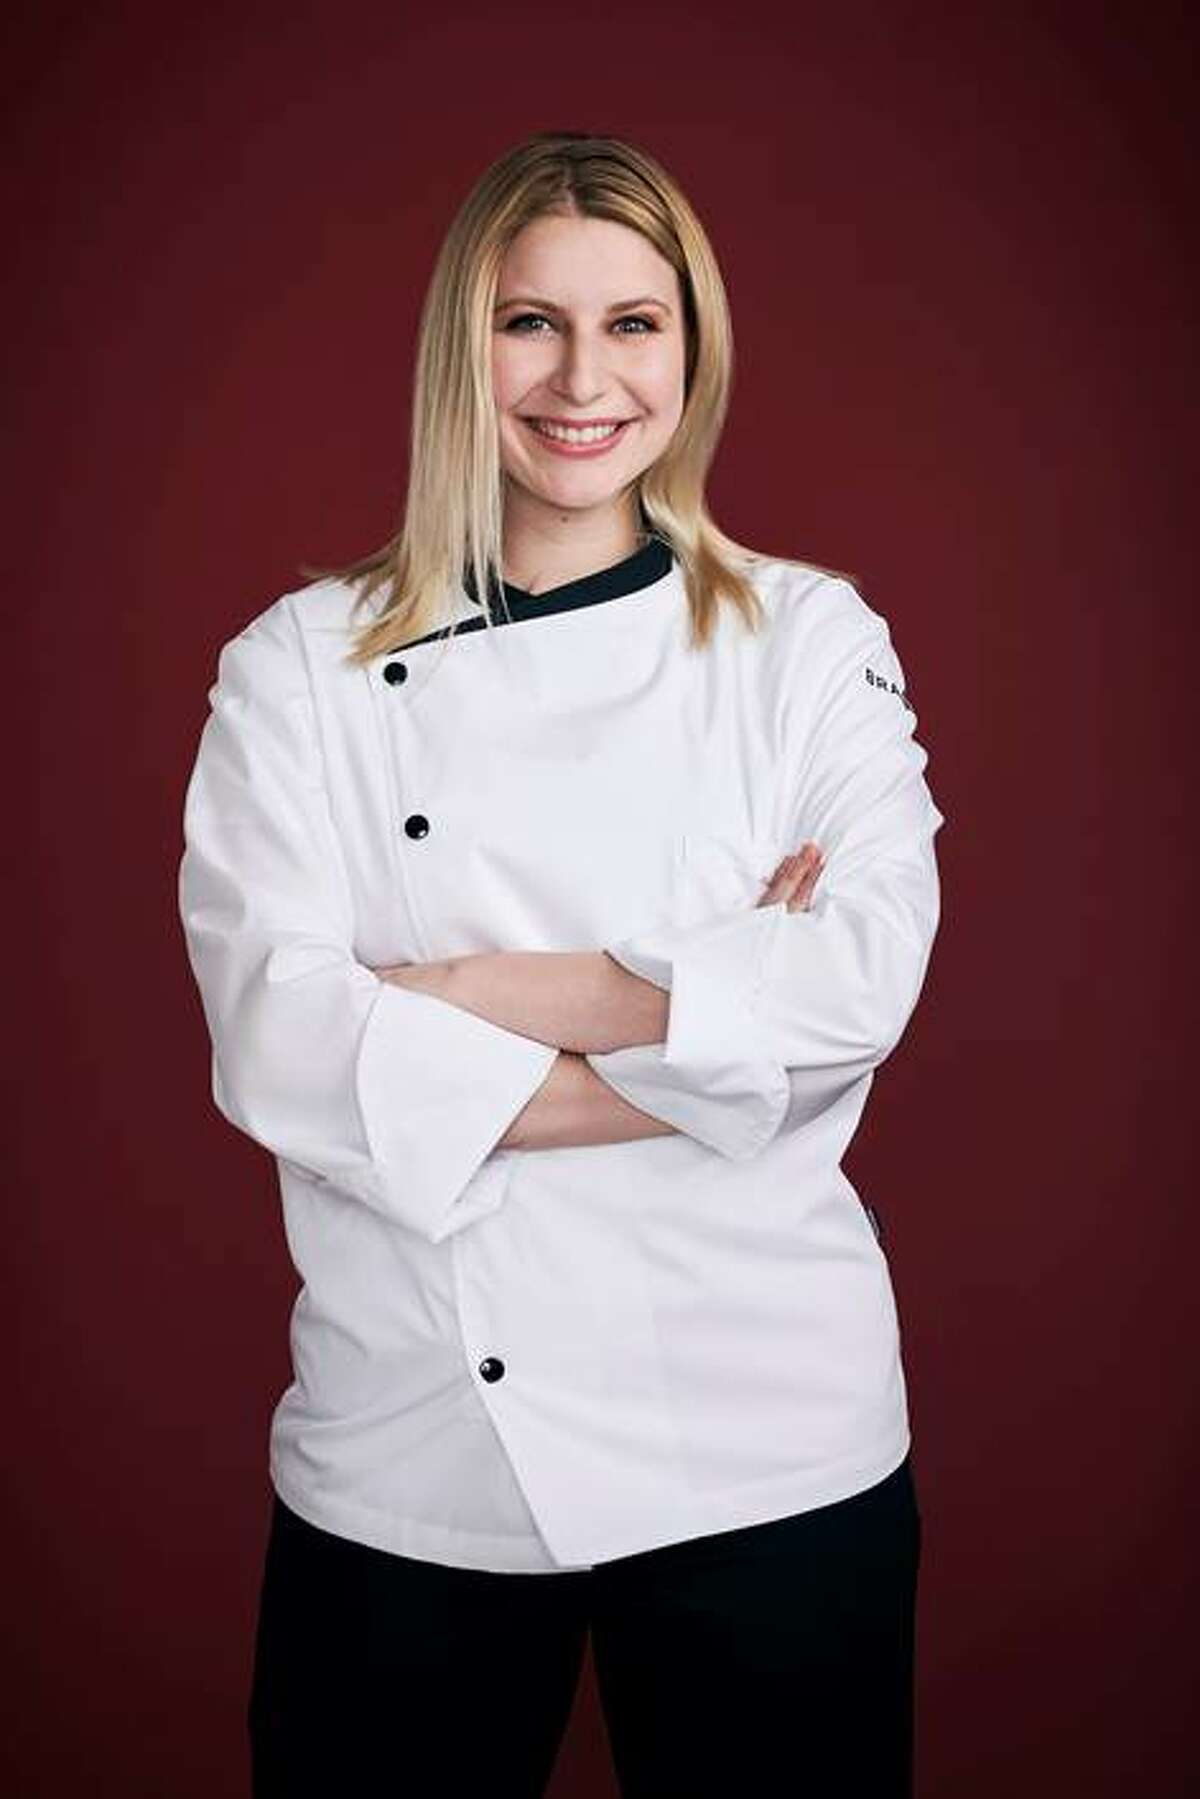 Emily Hersh currently works as a chef at Jardinwest of downtown and also offers virtual and in-person cooking classes.